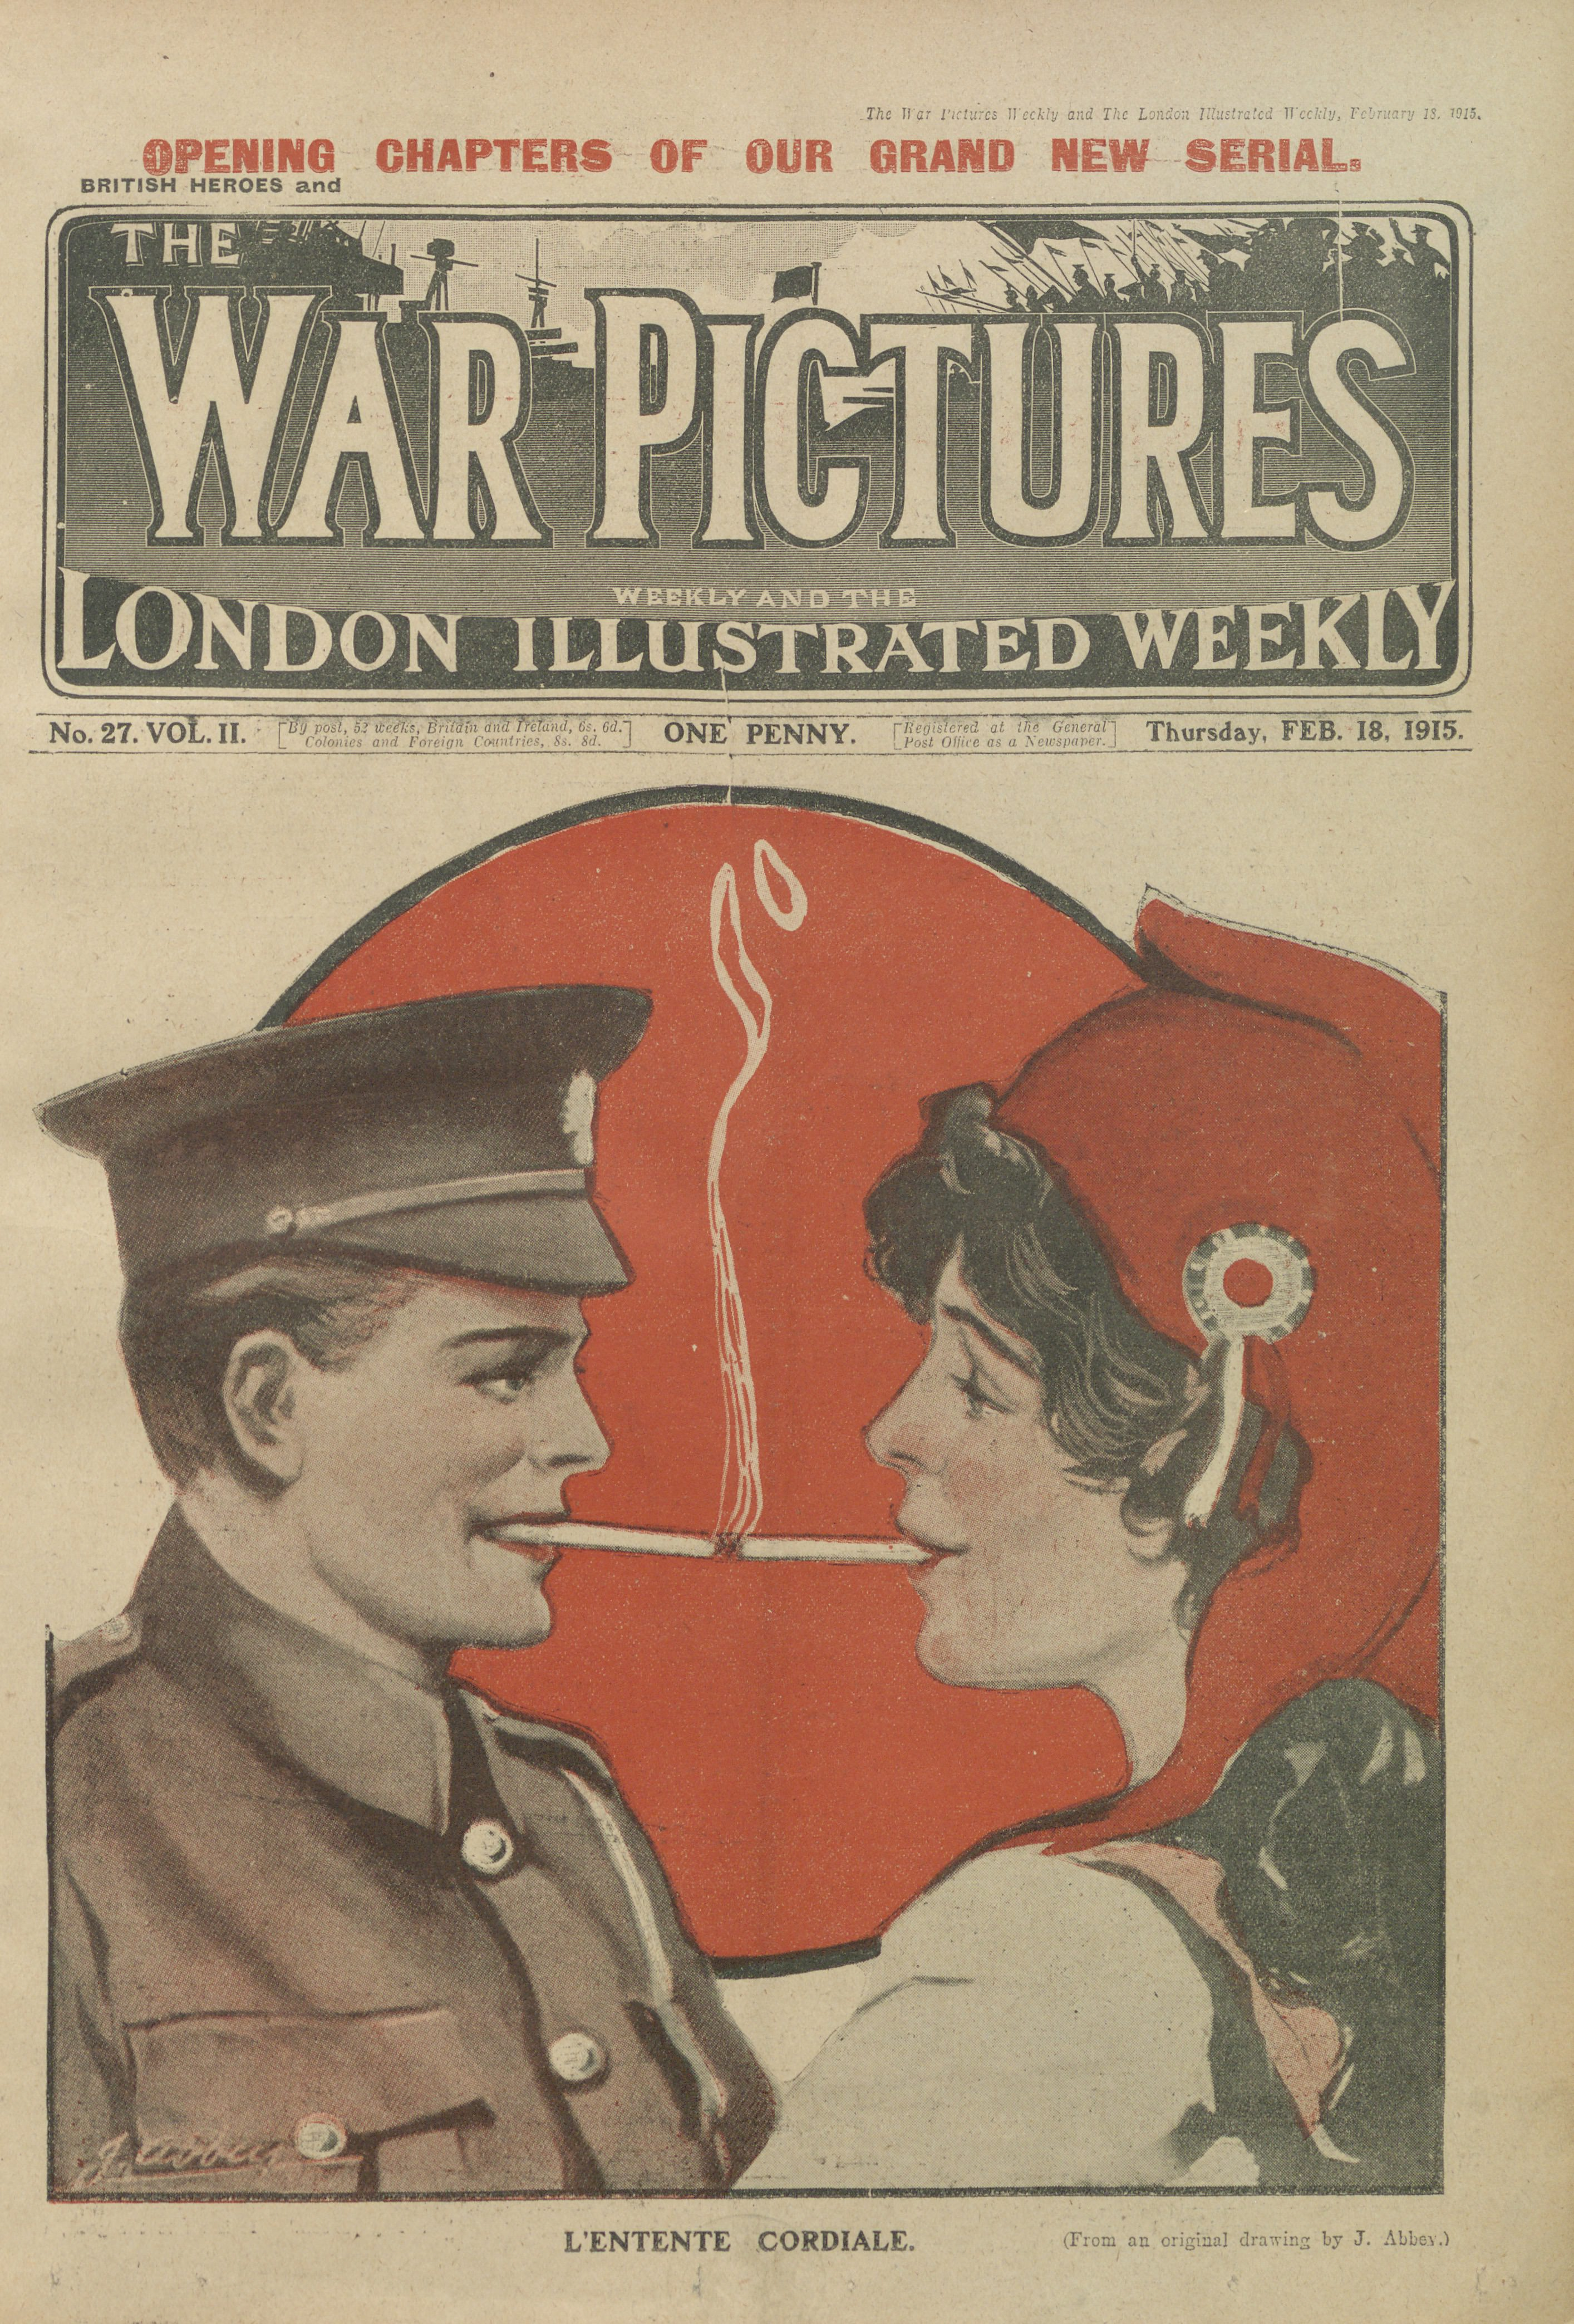 cover design (from an original drawing by J. Abbey) for <i>The War Pictures Weekly</i> and <i>The London Illustrated Weekly</i>, no. 27, Vol. II, 18 February 1915. Collection of The British Library.